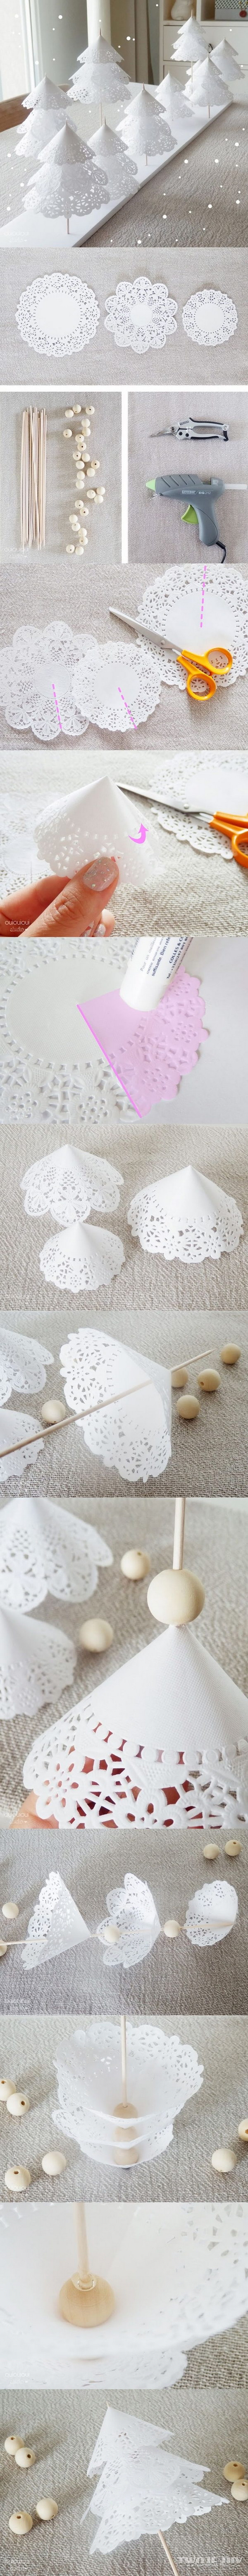 DIY Paper Doily Christmas Trees